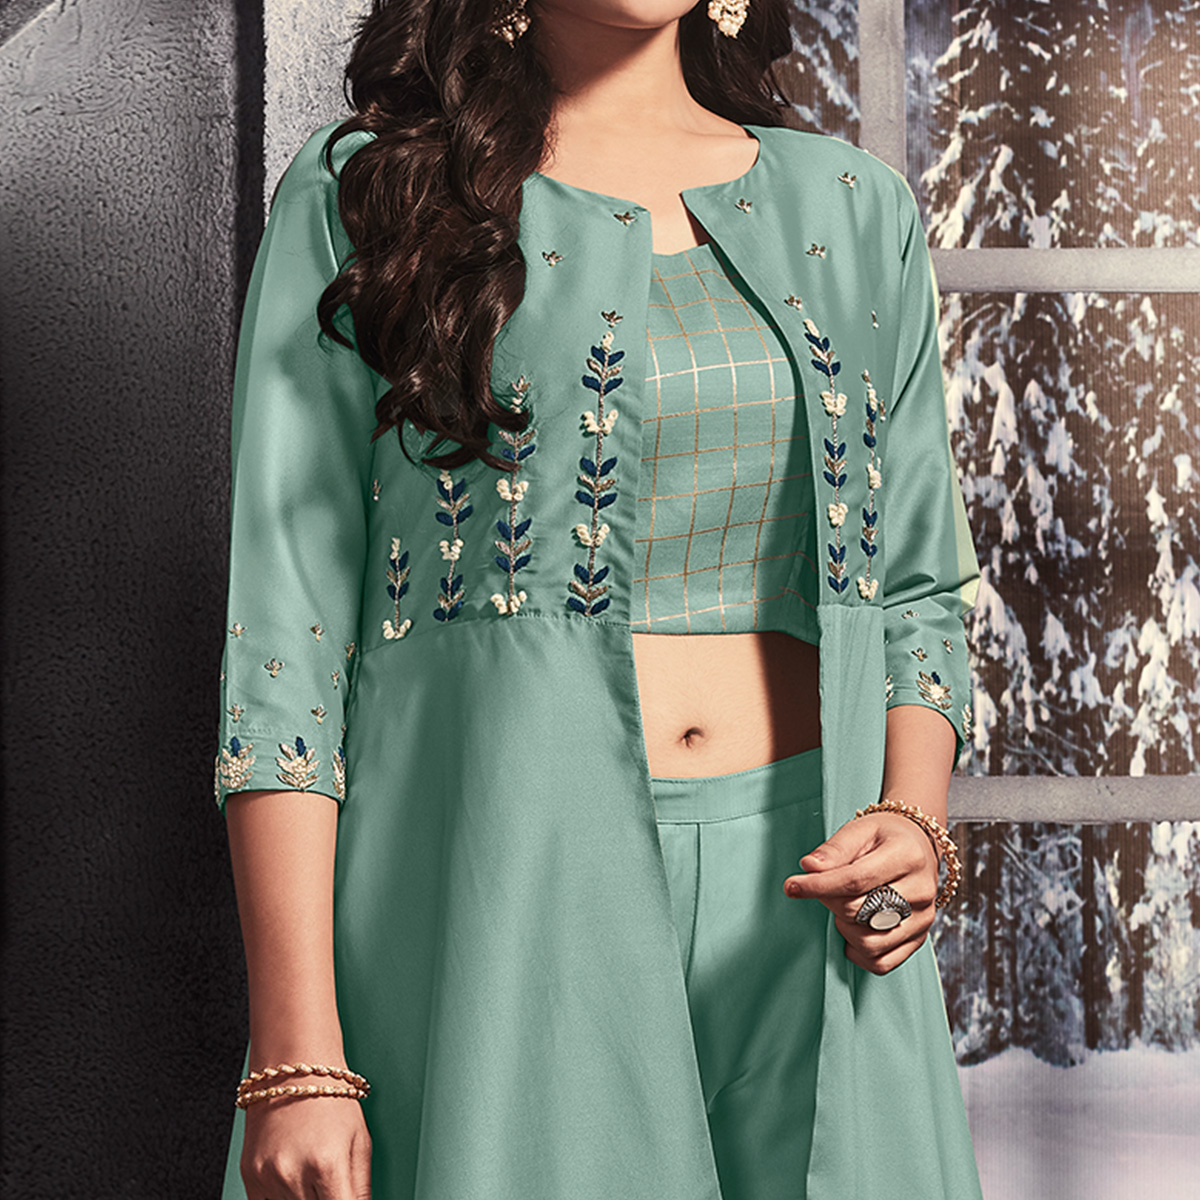 Graceful Turquoise Green Colored Party Wear Embroidered Satin Jacket Style Kurti-Pant Set